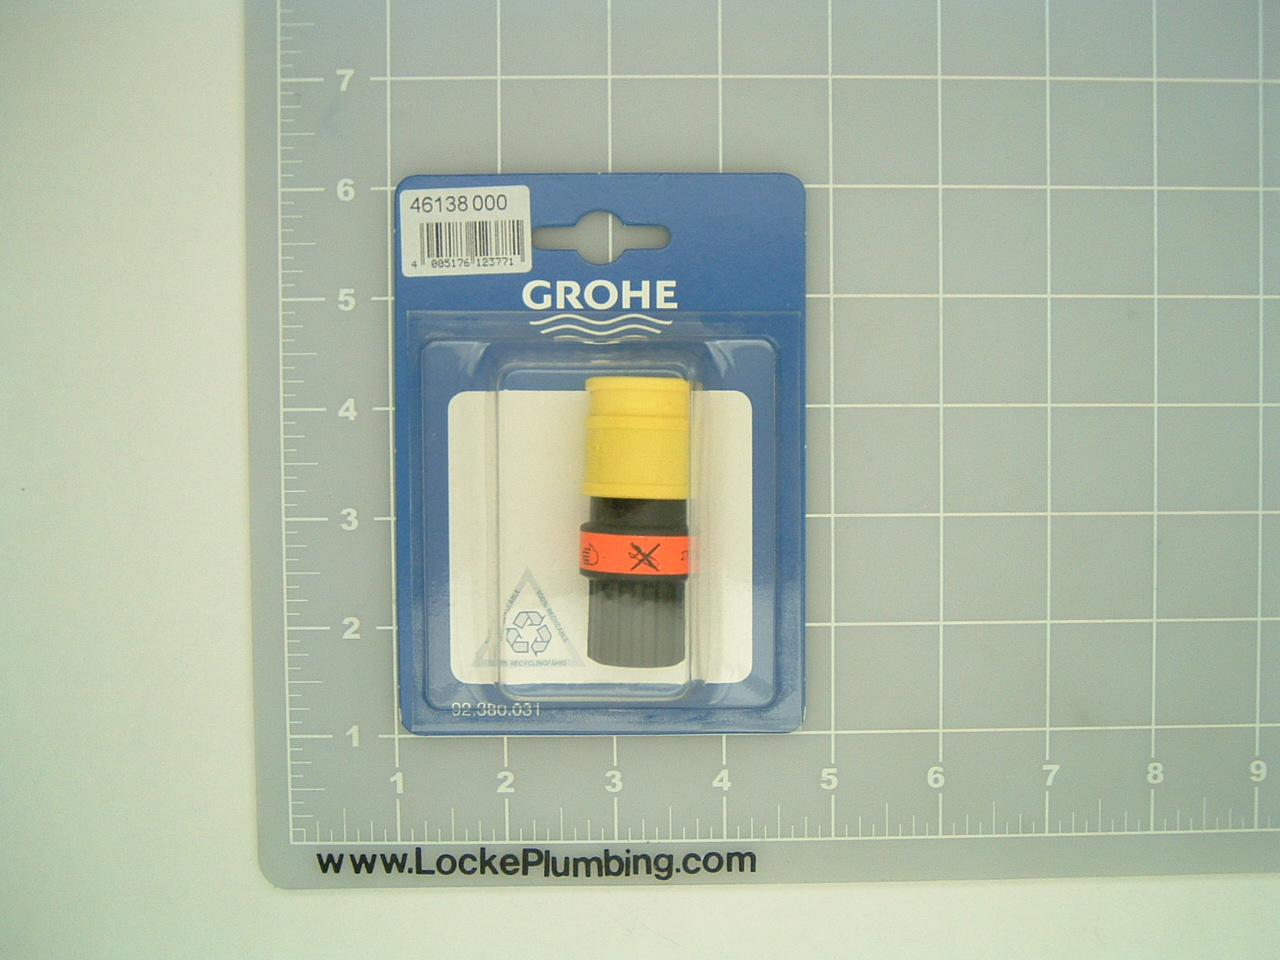 Grohe 46138000 Yellow/Black Quick Disconnect Coupling for Kitchen ...